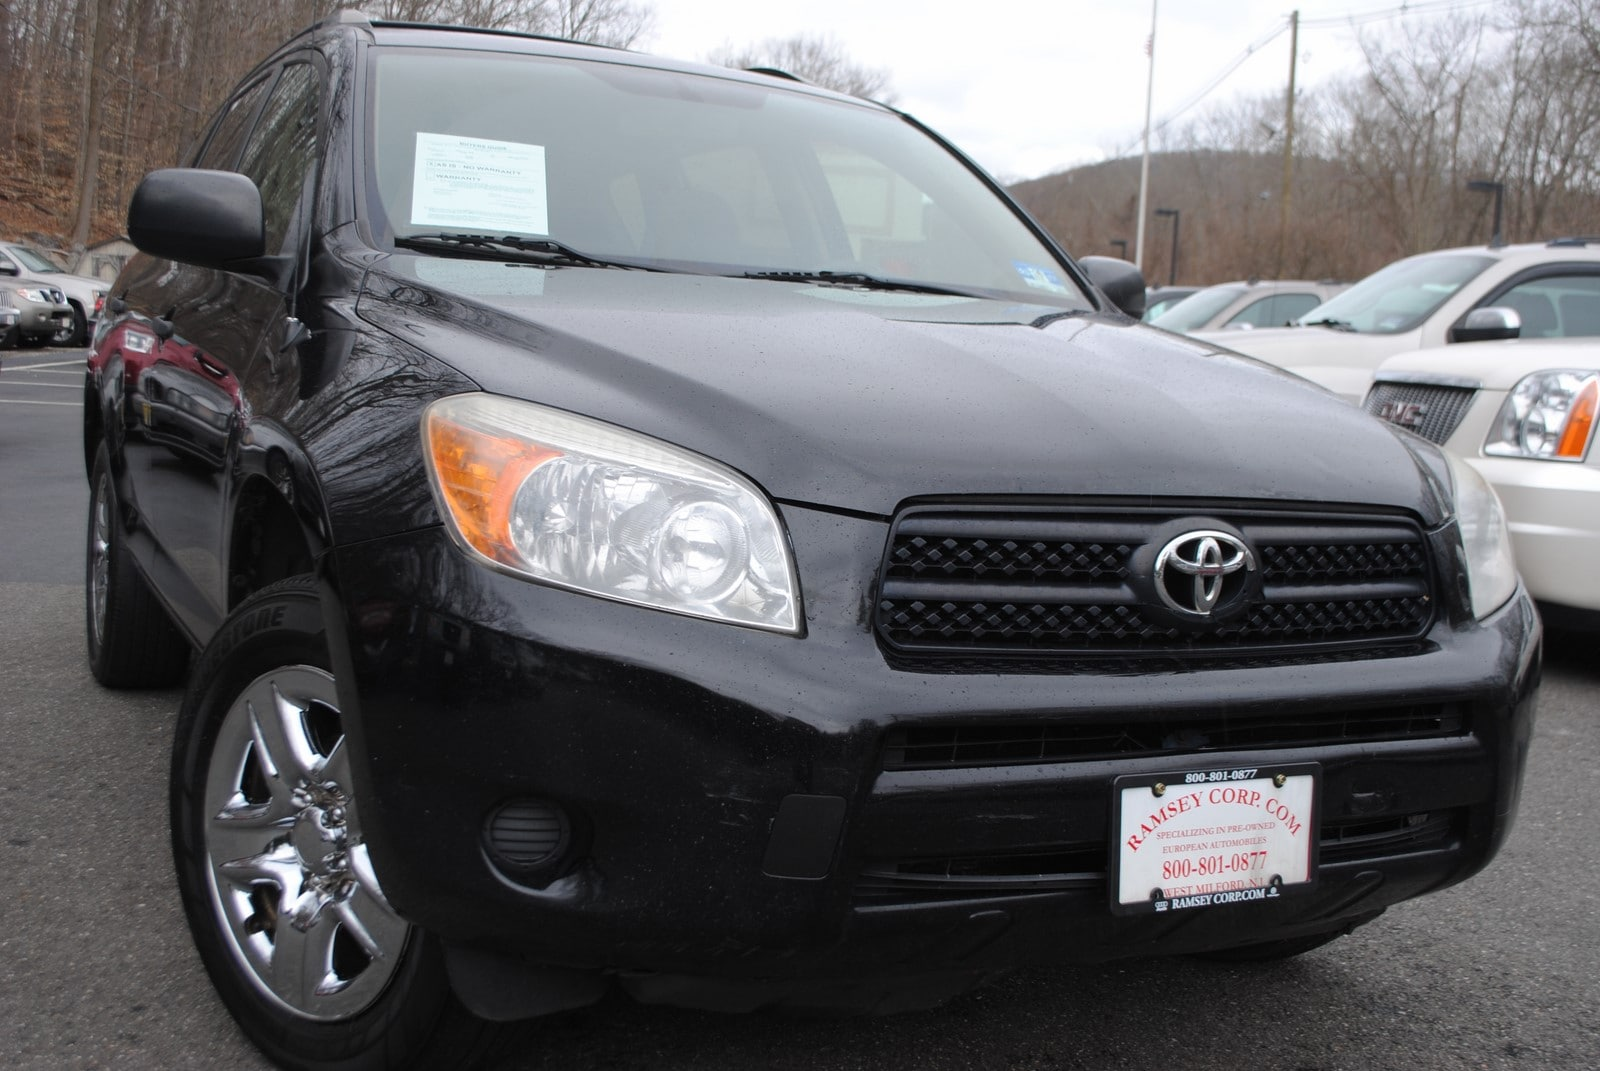 used 2007 toyota rav4 for sale west milford nj. Black Bedroom Furniture Sets. Home Design Ideas